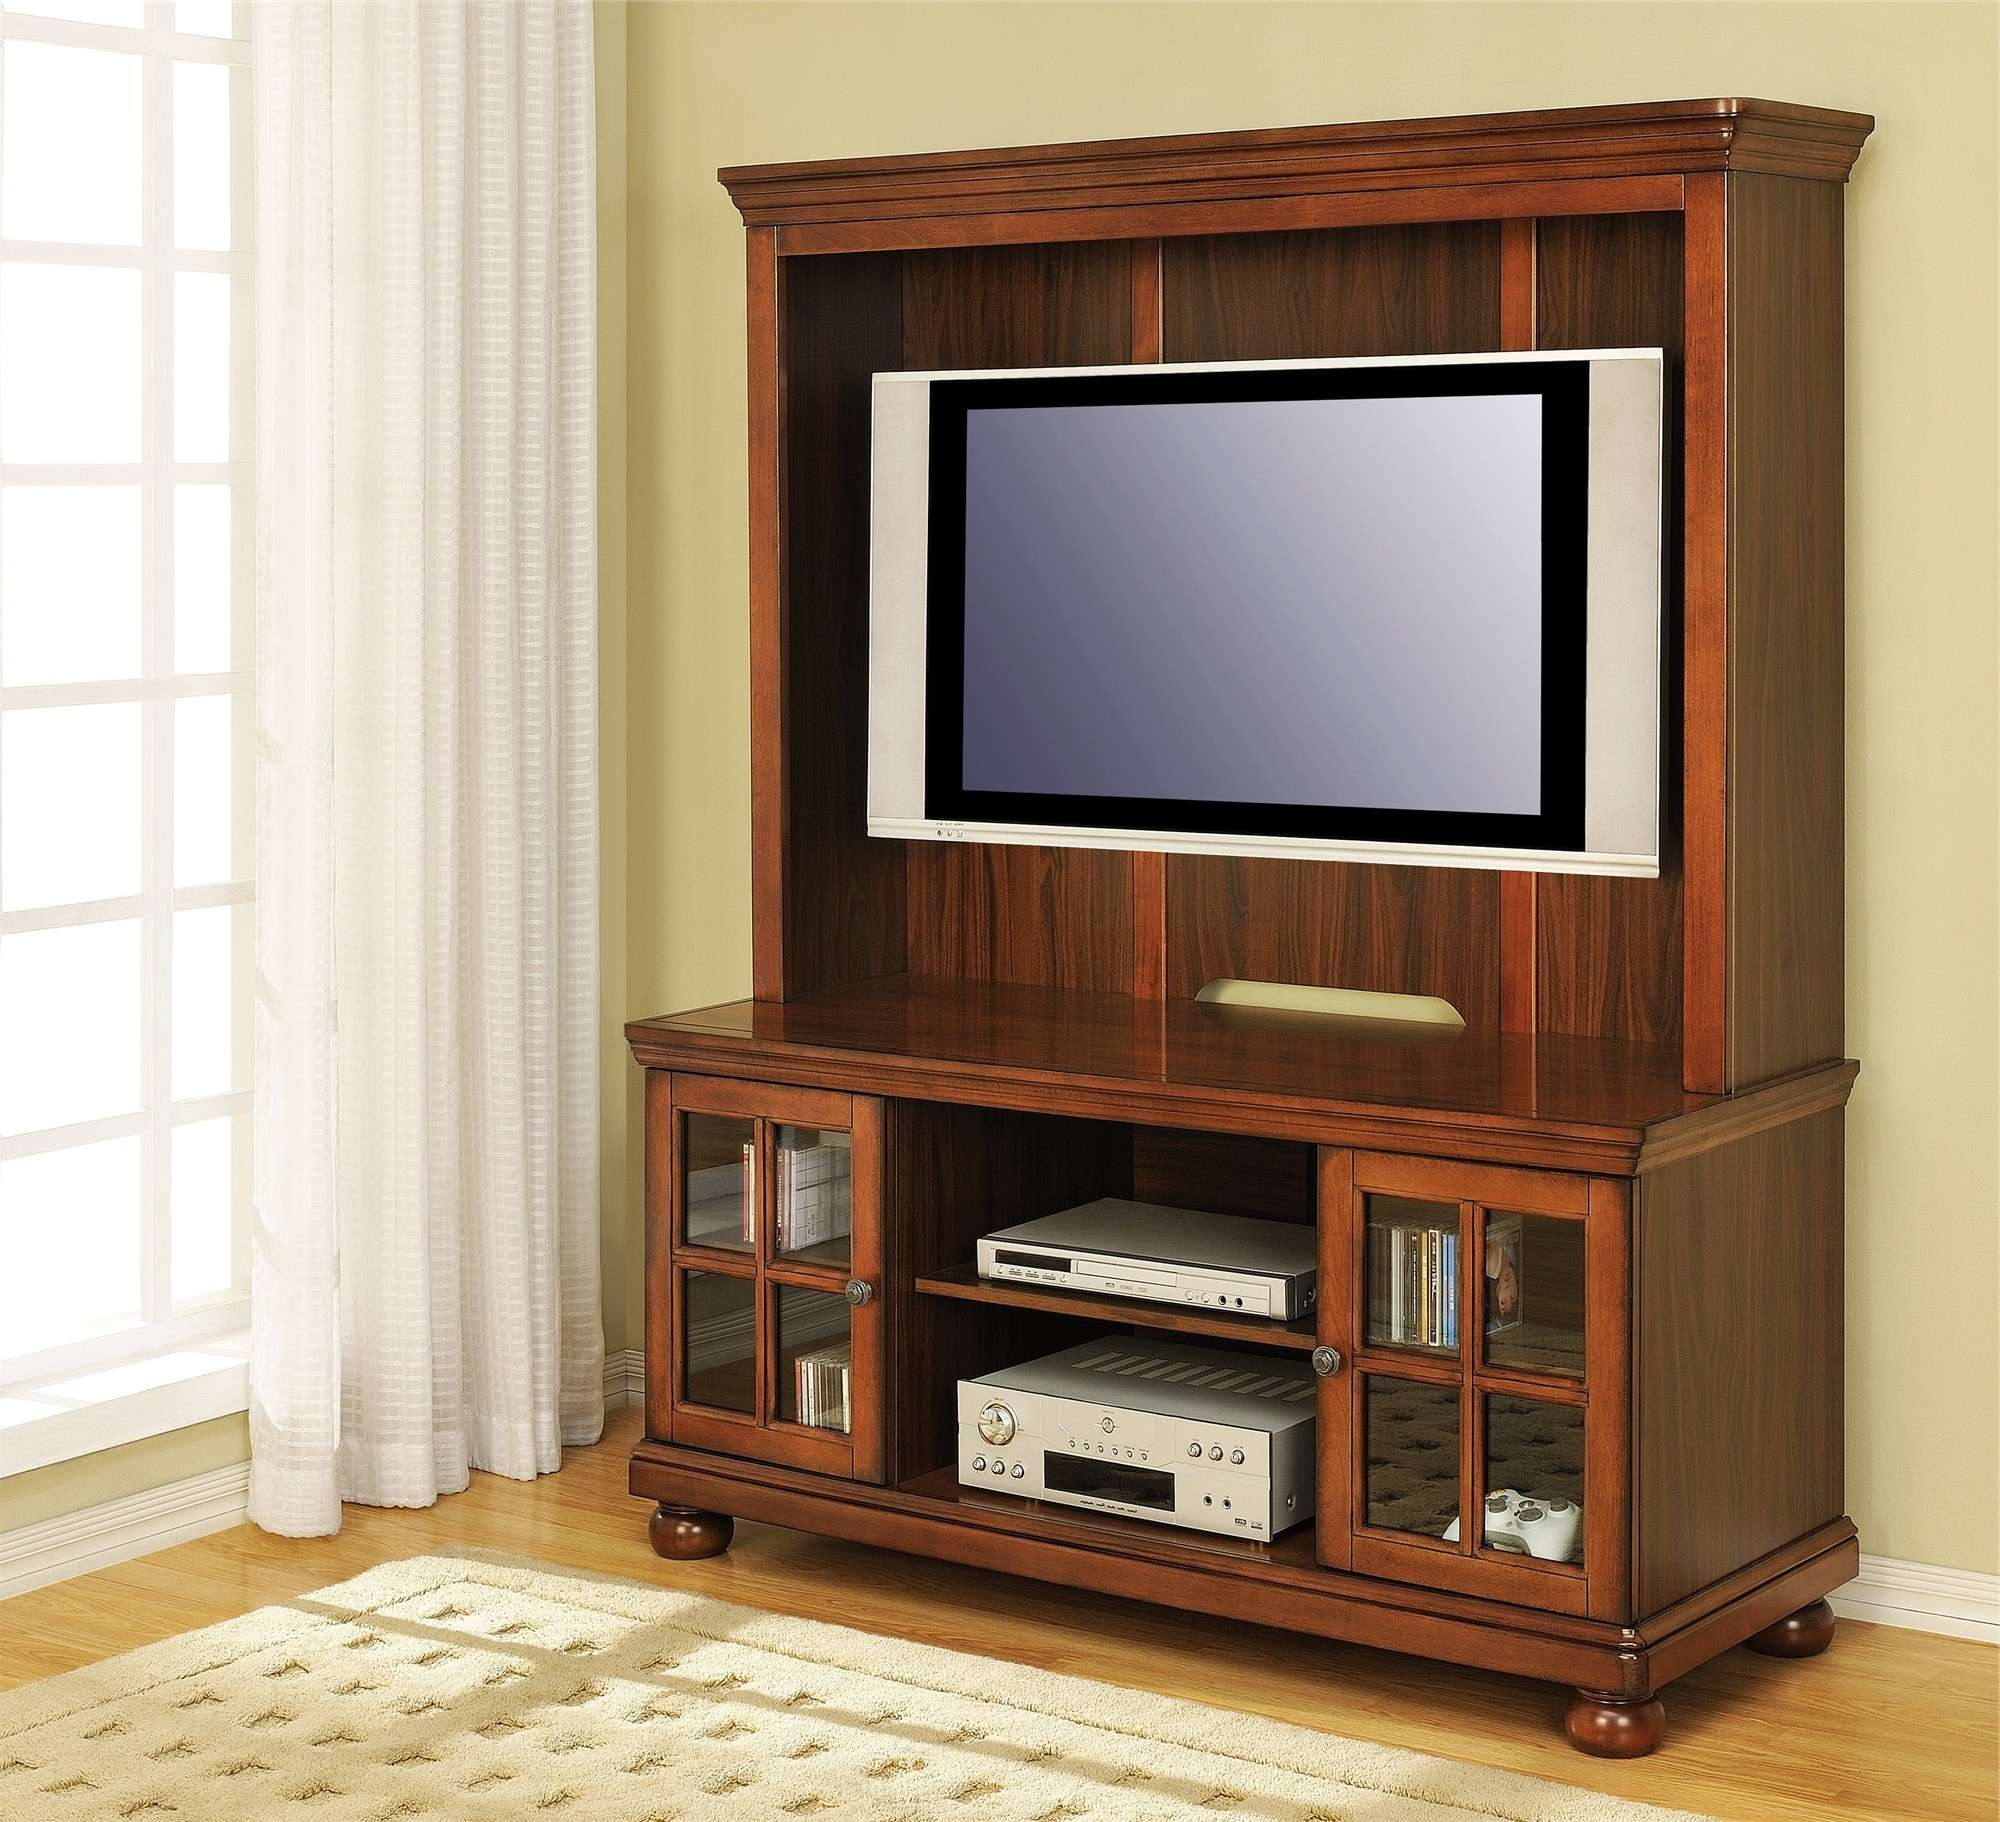 Corner Oak Tv Cabinets For Flat Screens With Doors • Corner Cabinets Inside Oak Tv Cabinets For Flat Screens (View 9 of 20)